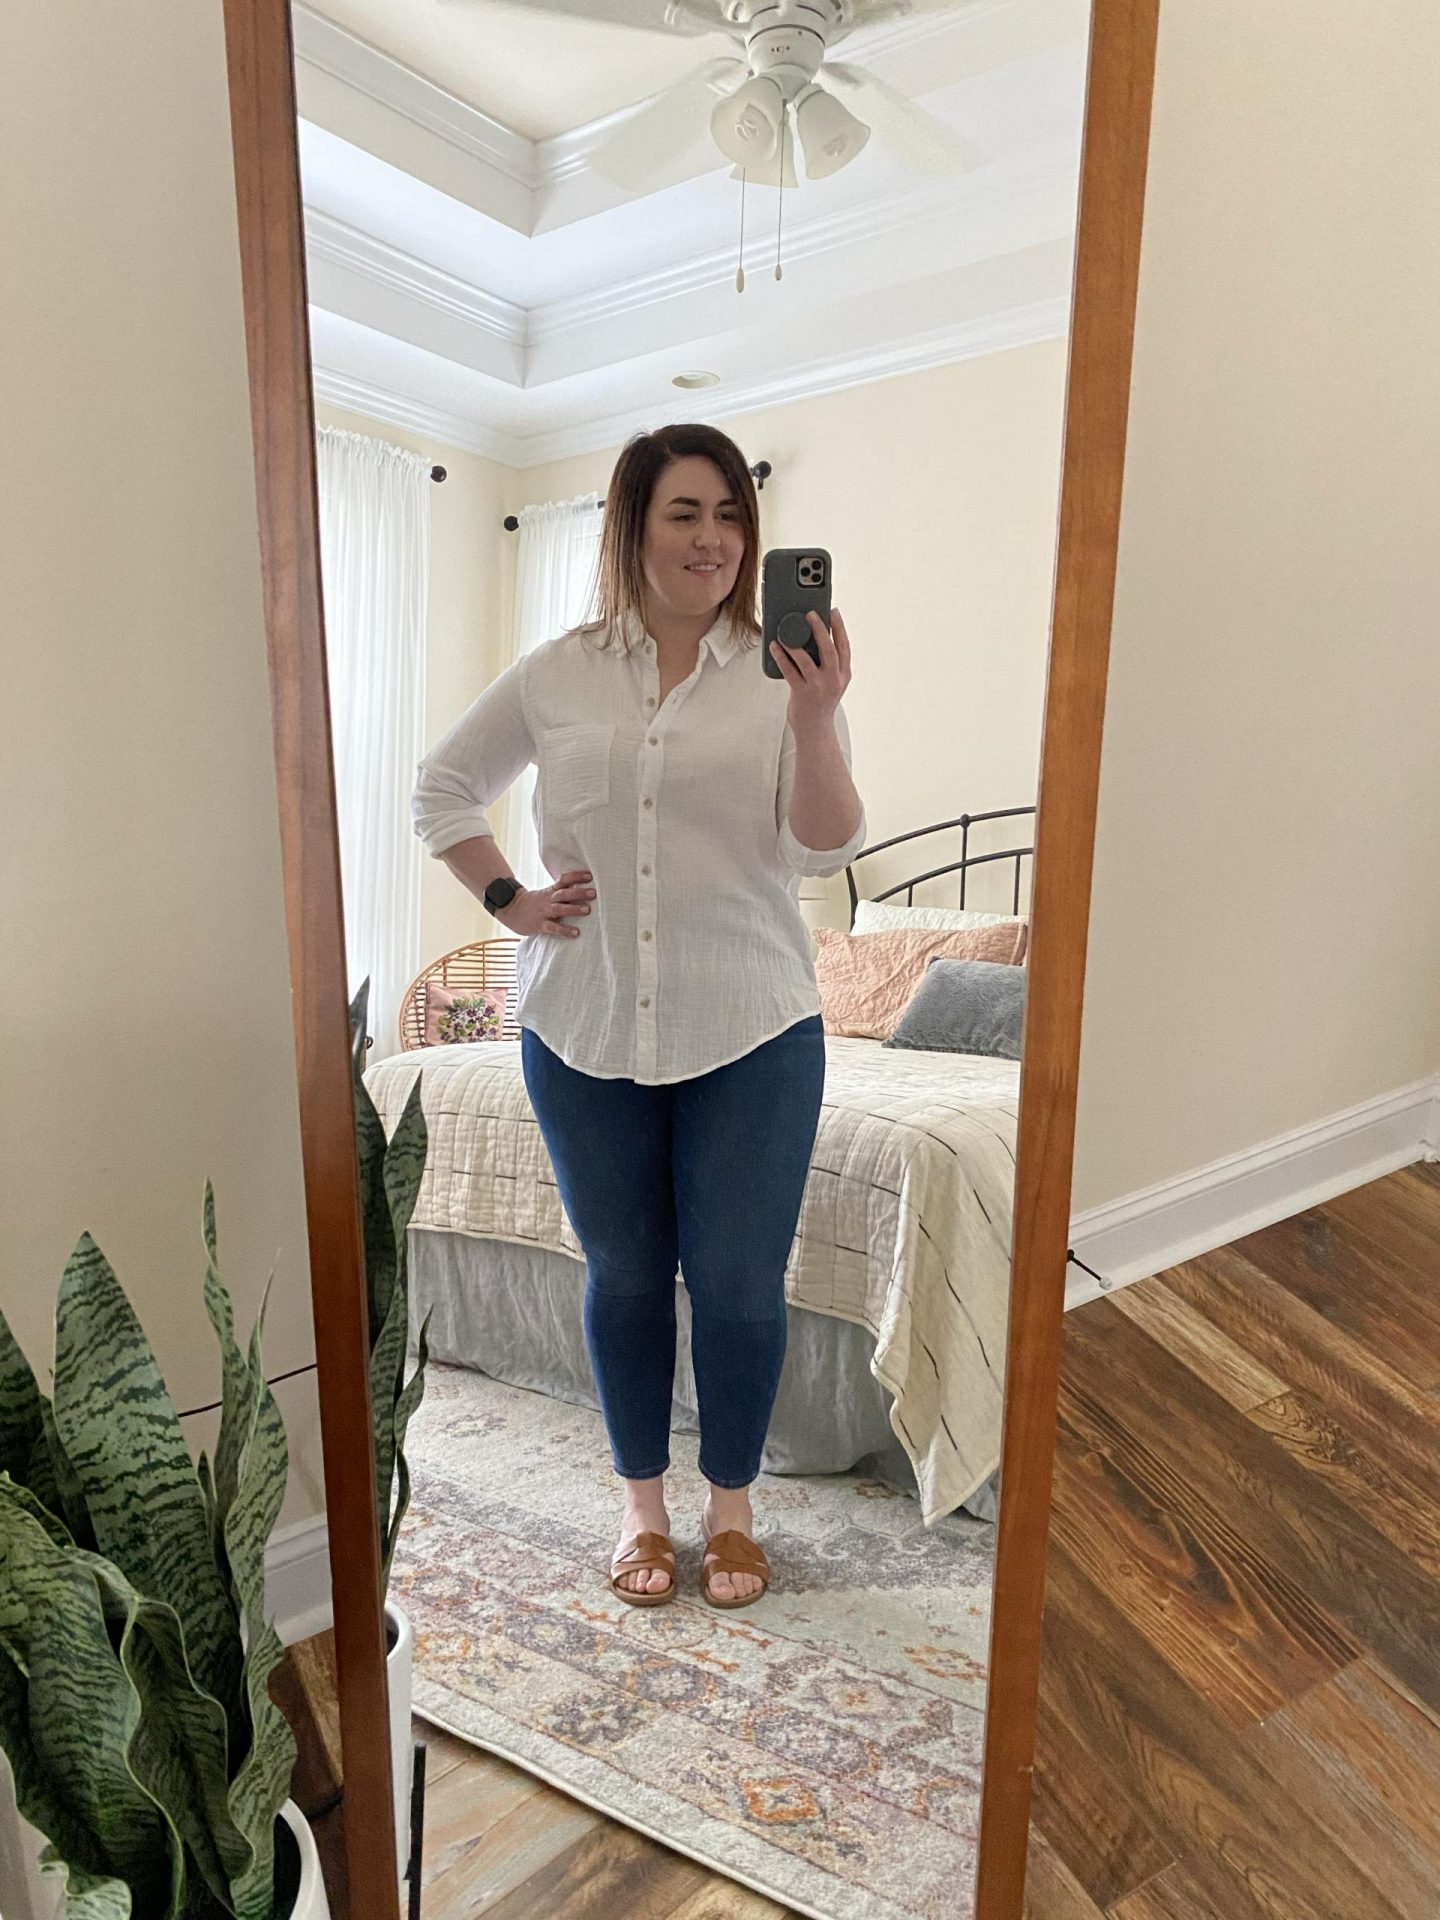 NC blogger Rebecca Lately is sharing her recent summer outfits. From casual to work from home and Sunday best, there's a variety!